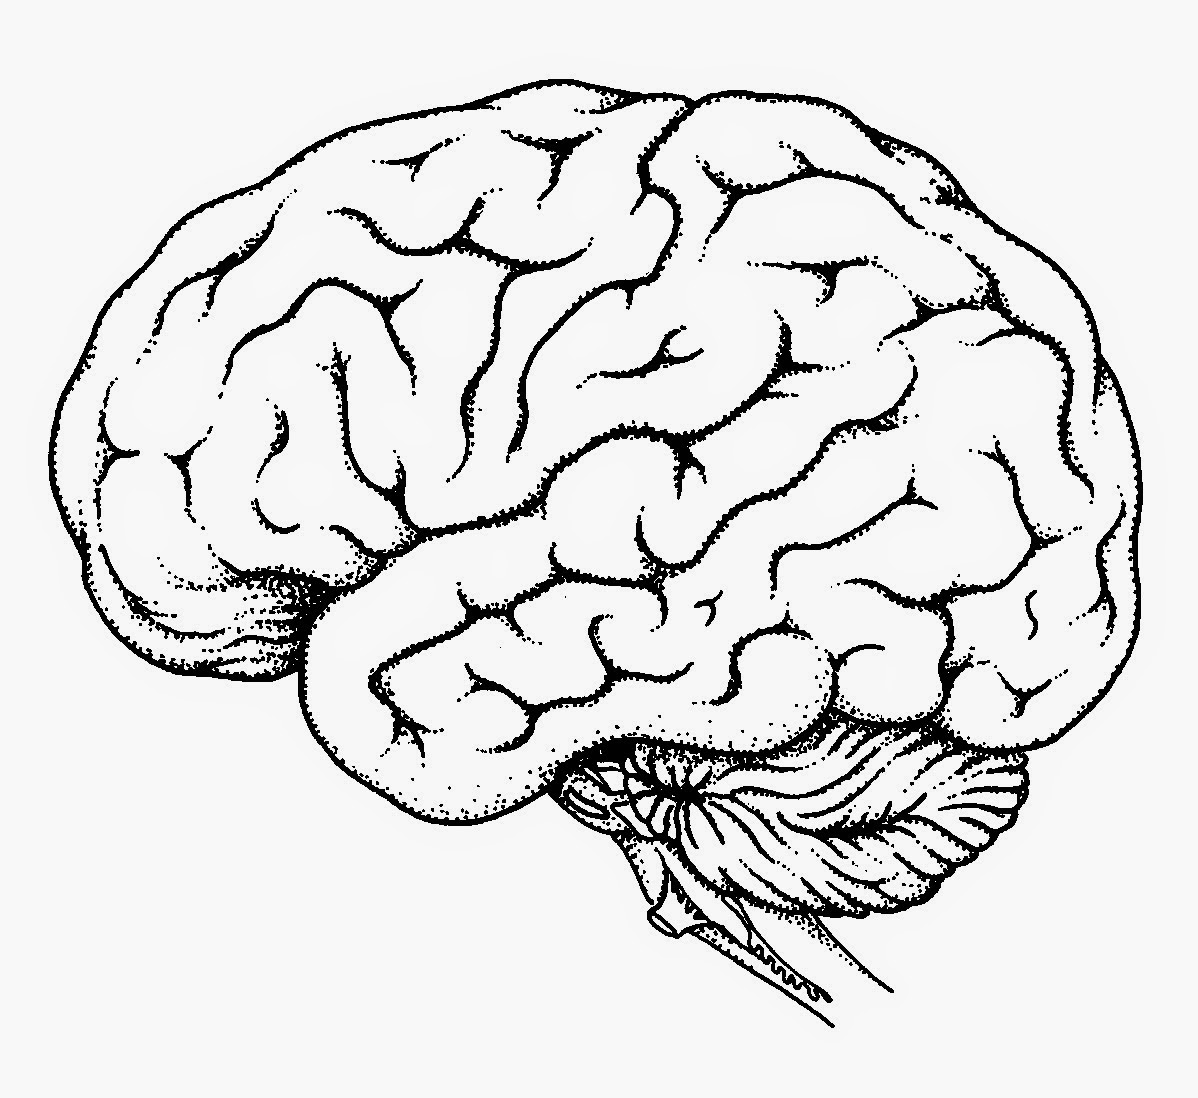 brain outline drawing 4